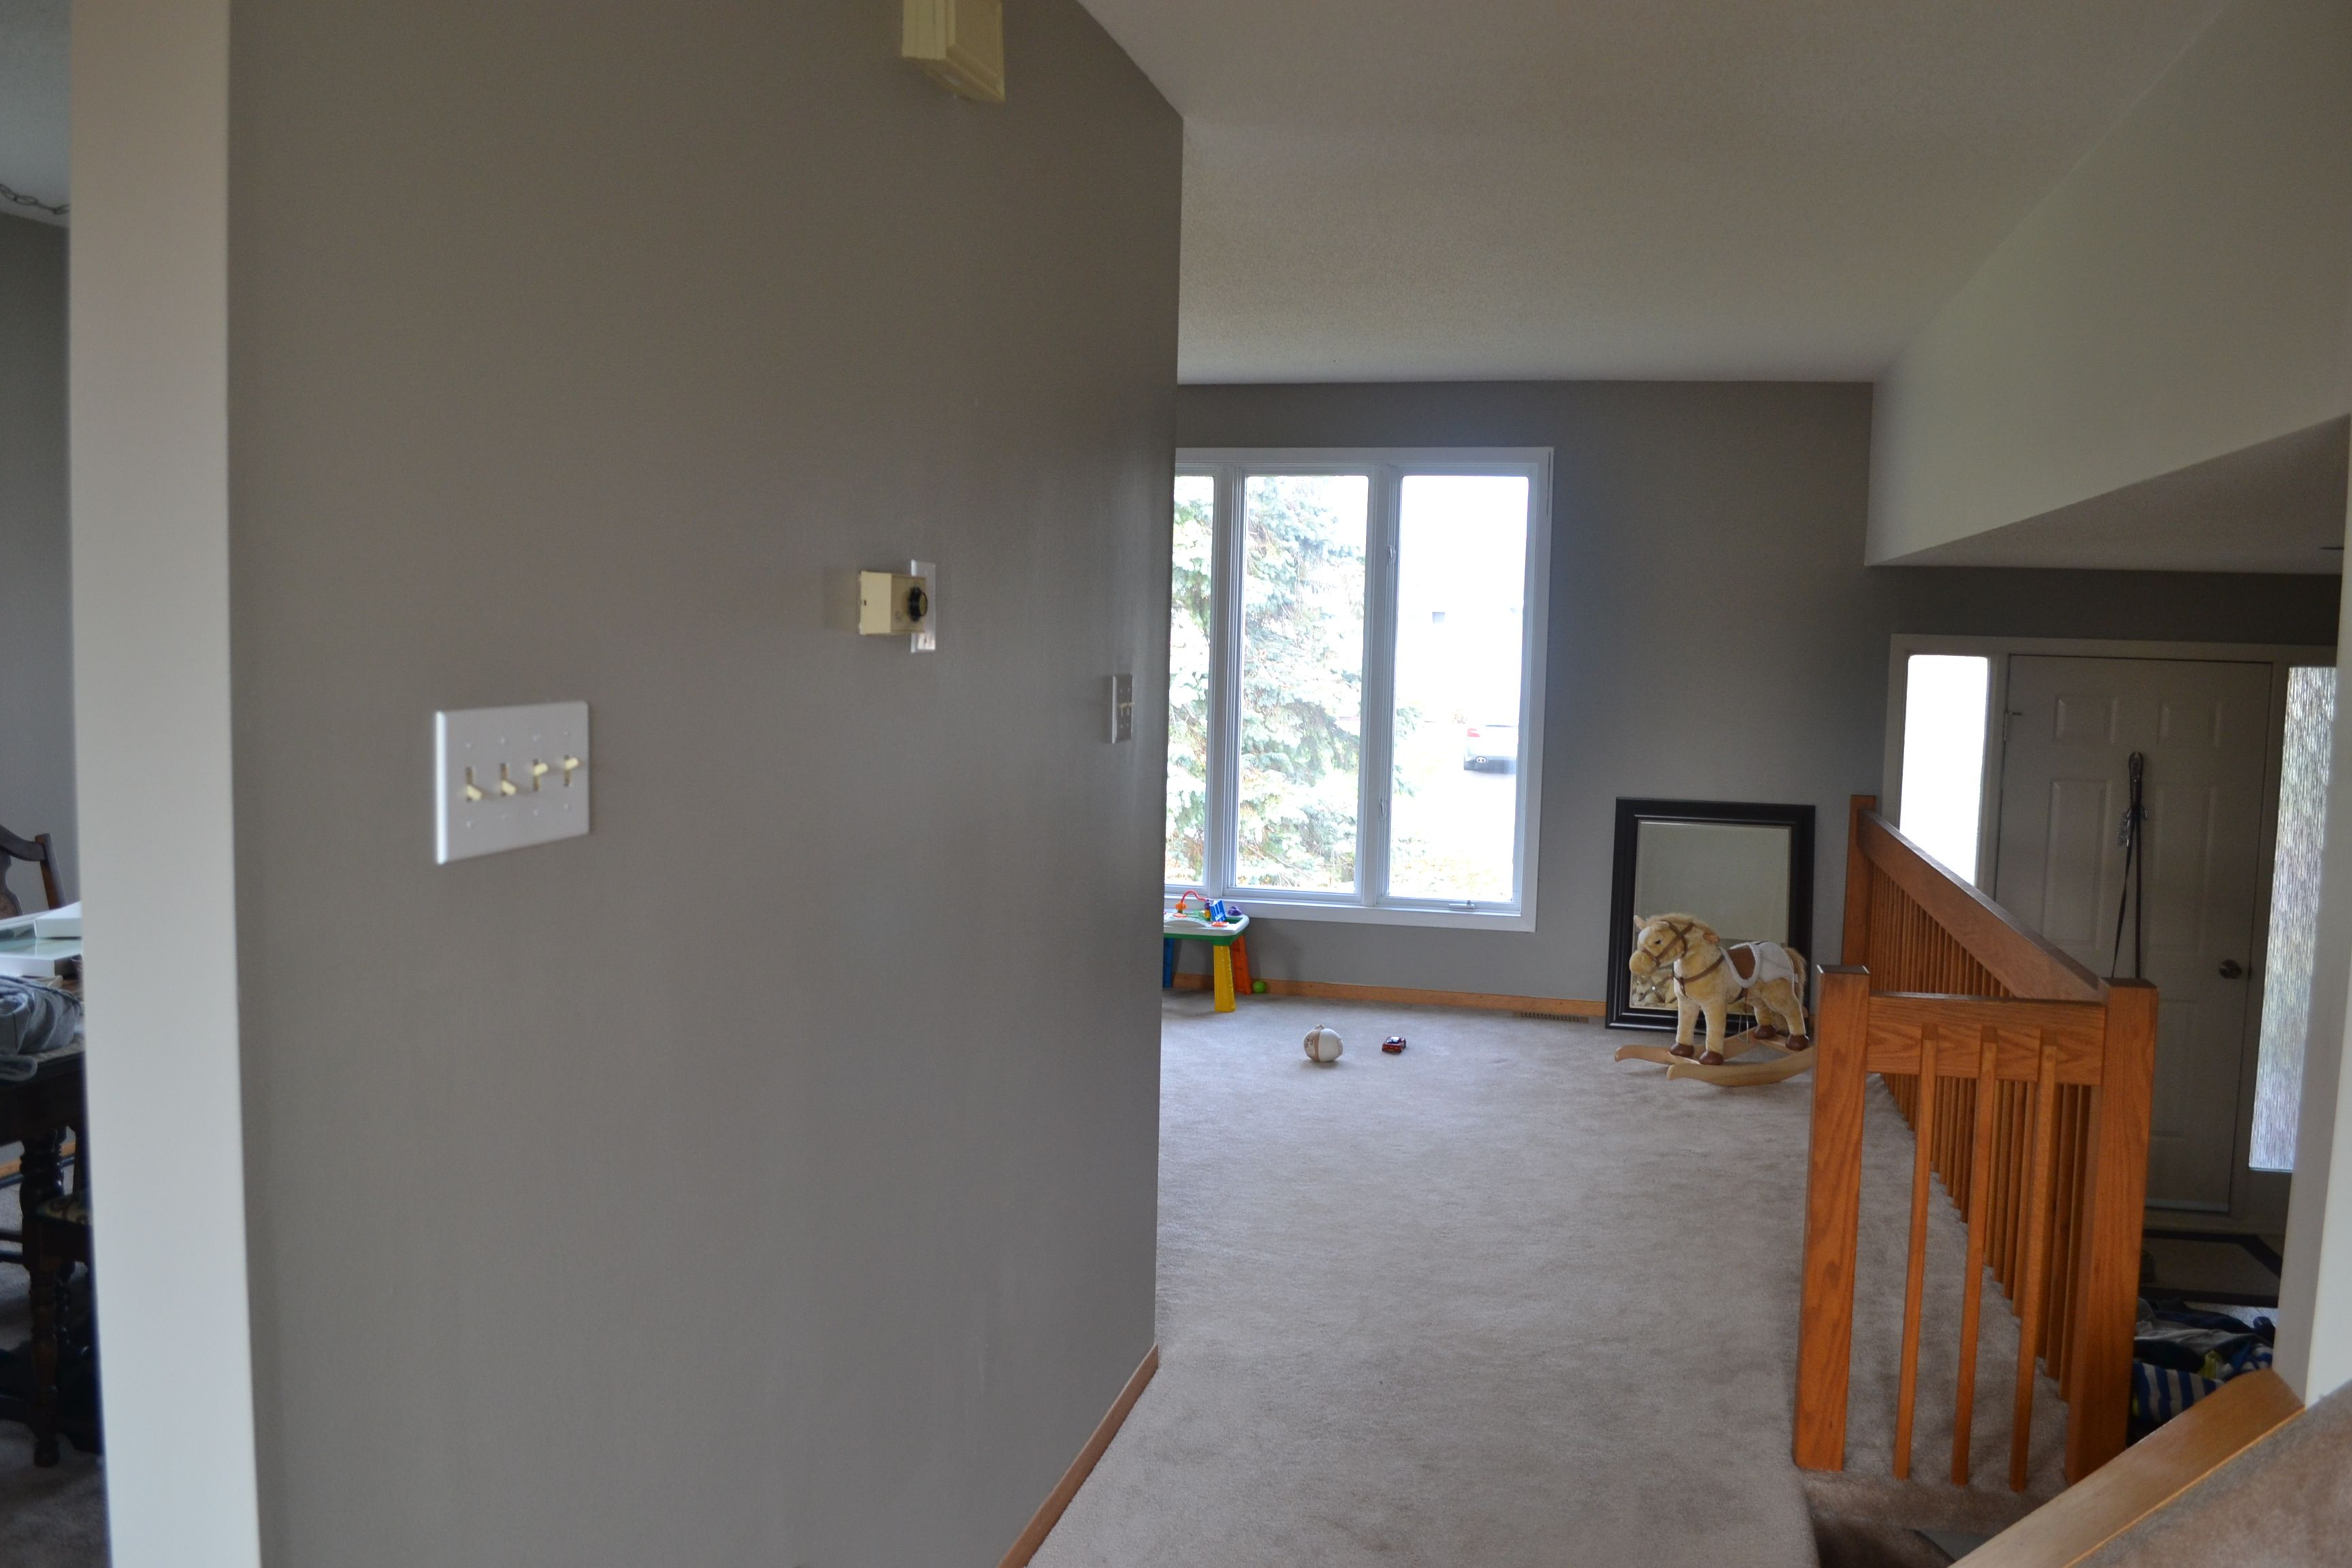 Room Benjamin Moore Rockport Gray